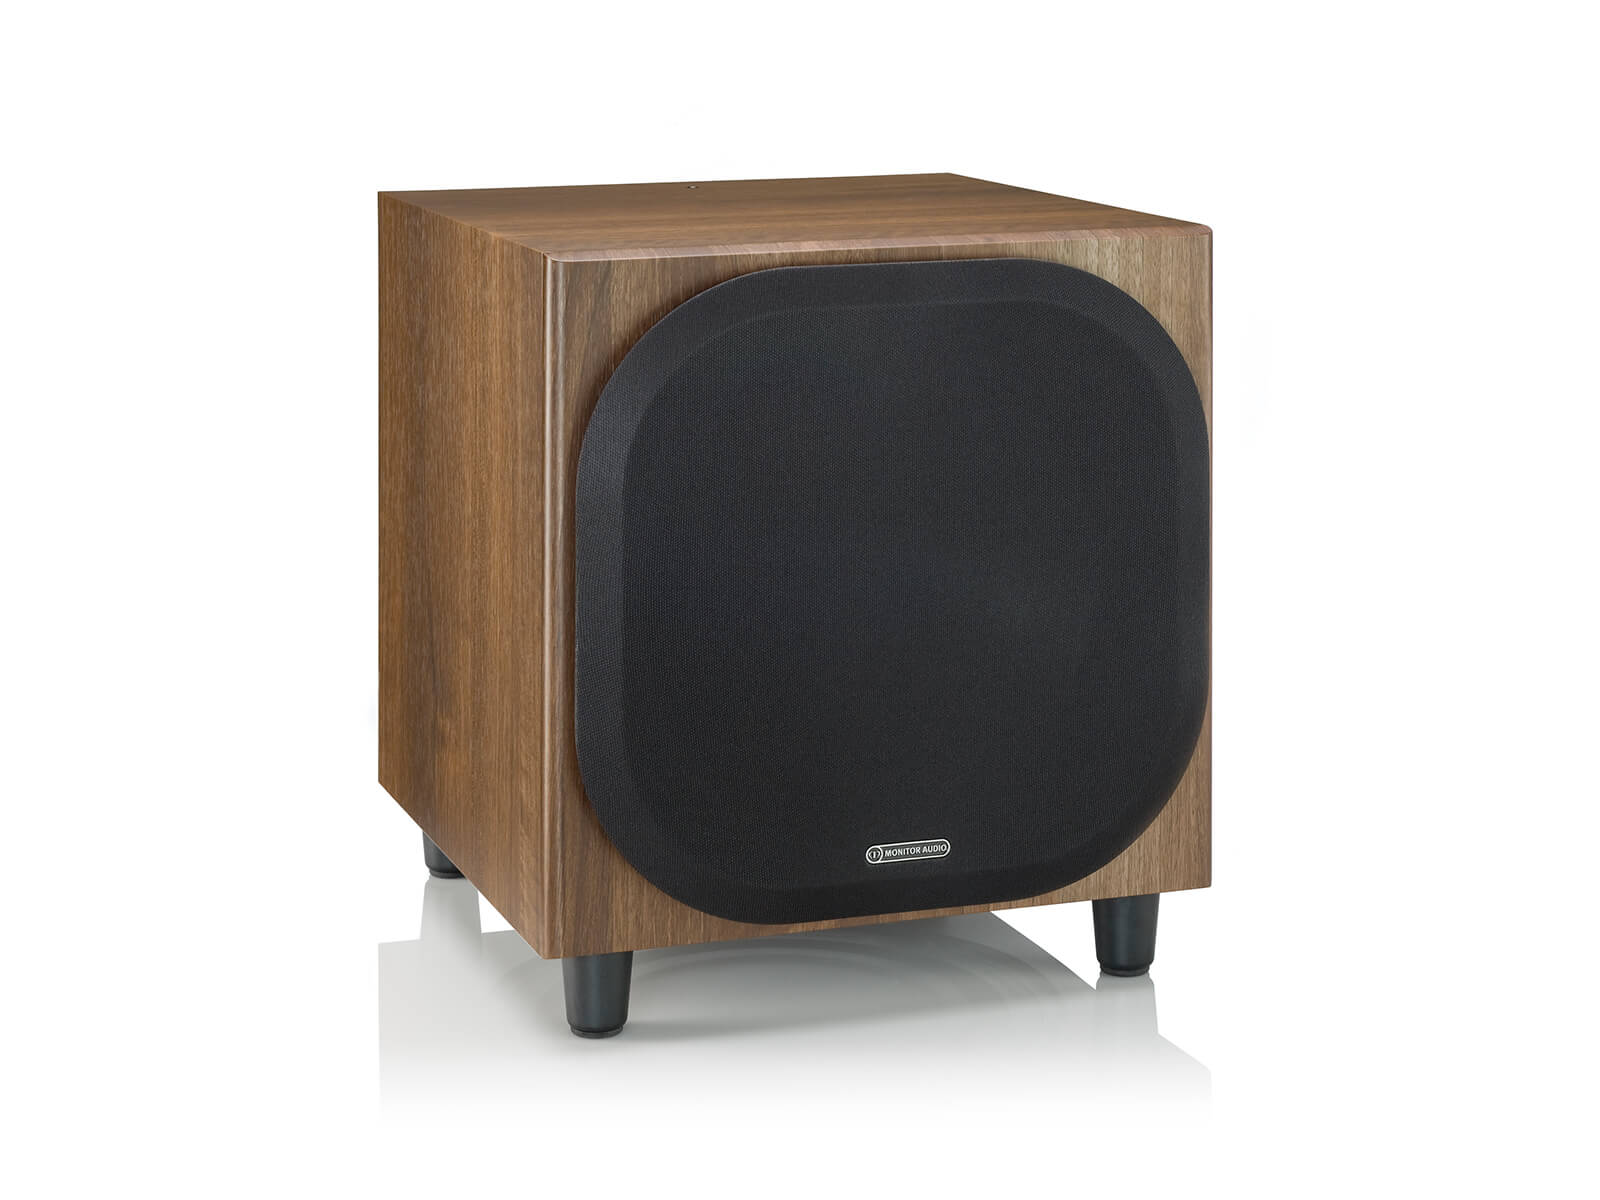 Bronze W10 subwoofer, featuring a grille and a walnut vinyl finish.